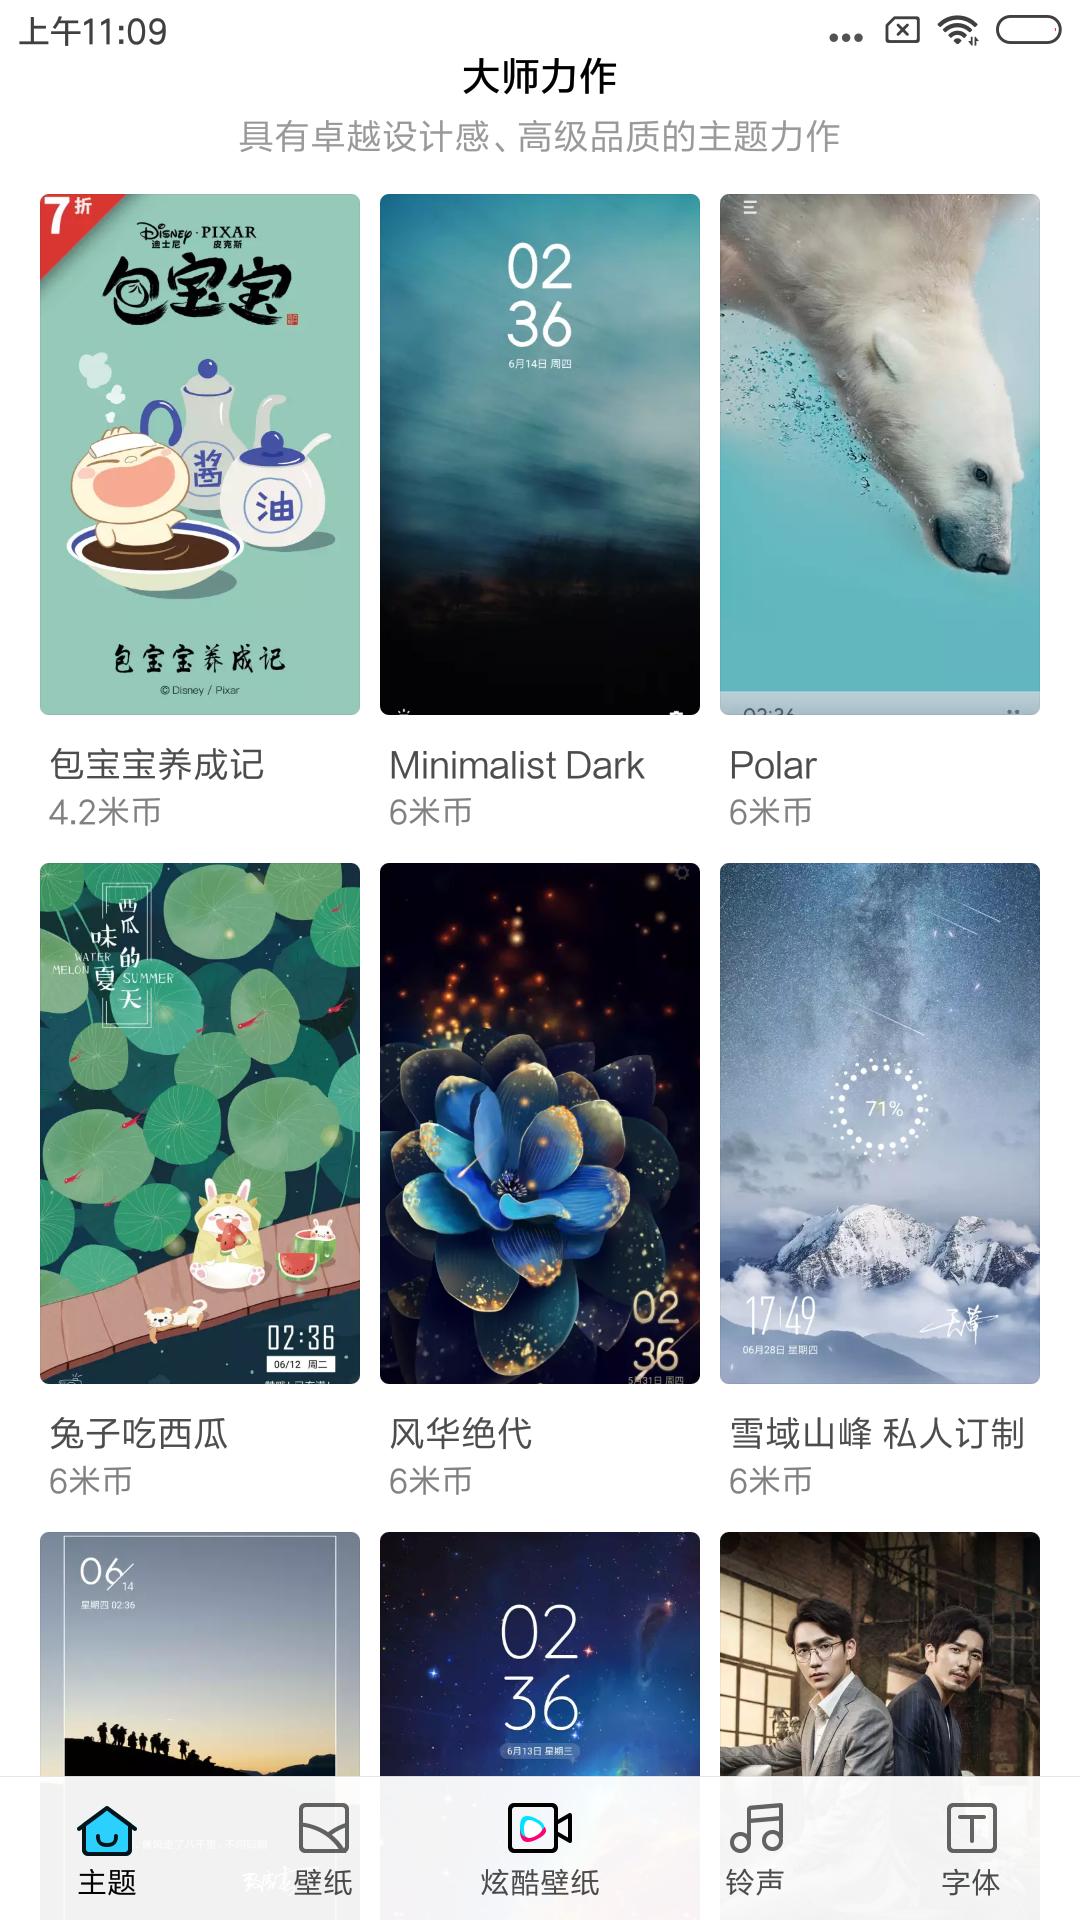 Screenshot_2018-07-08-11-09-18-276_com.miui.home.png